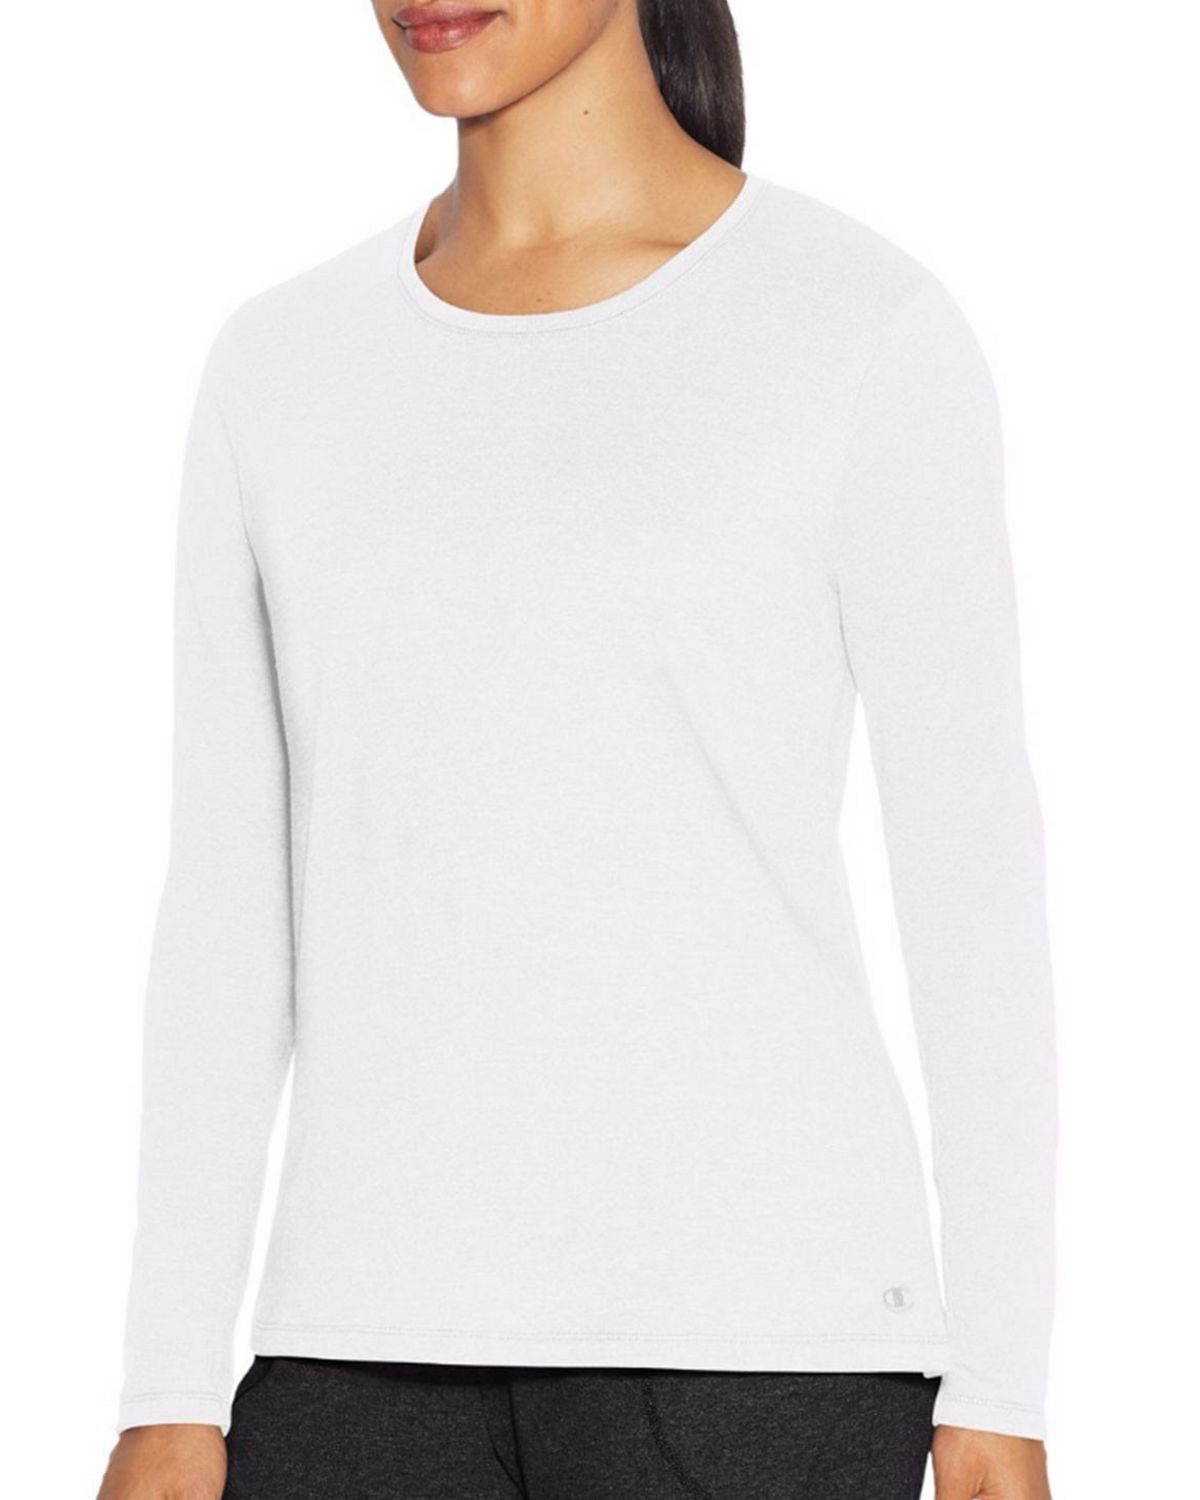 Champion W29563 Womens Vapor Tee - White - XL W29563